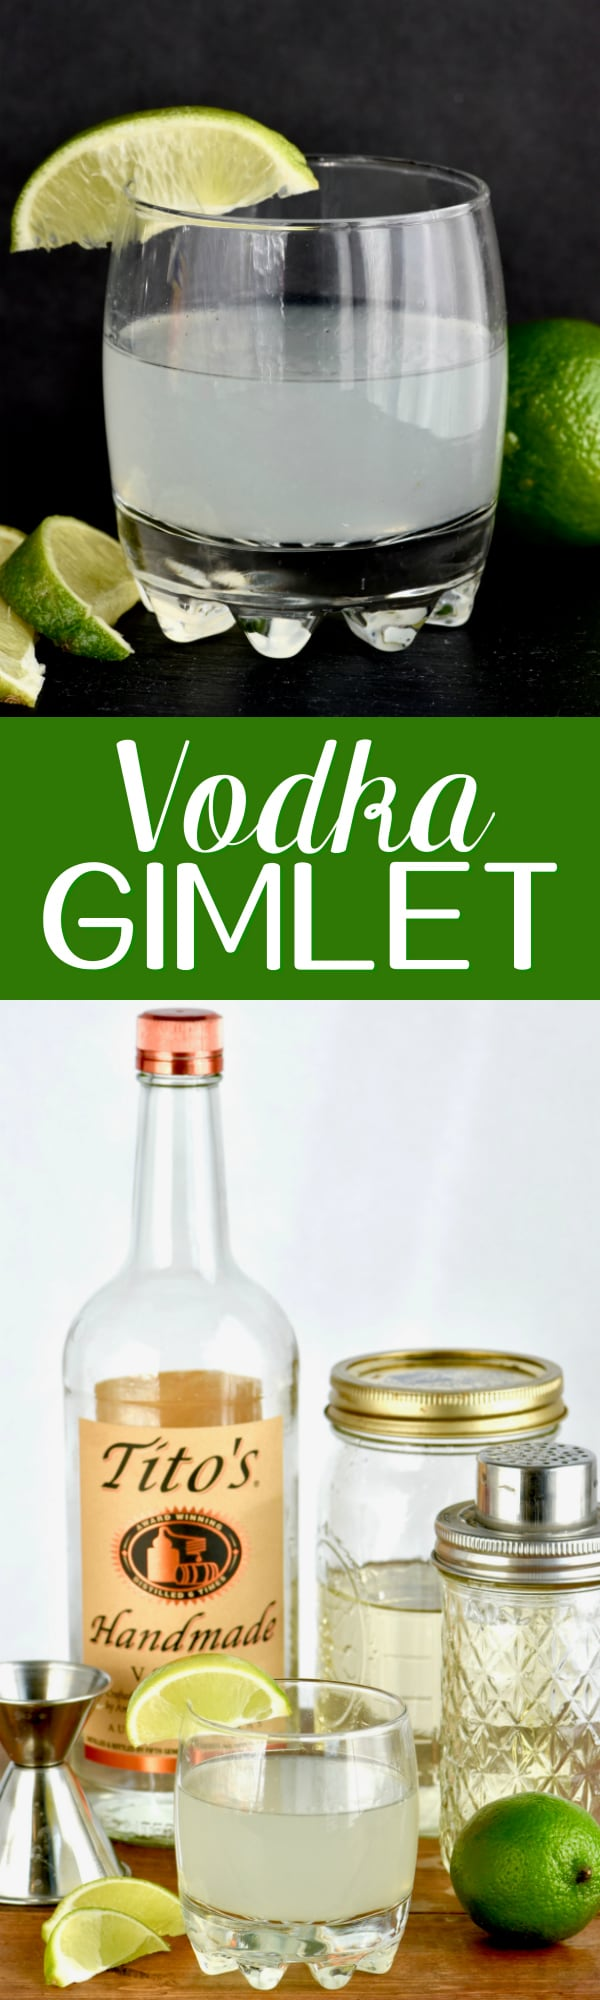 This classic Vodka Gimlet cocktail is the perfect combination of sour and sweet. With just three ingredients, you can't beat this vodka gimlet recipe!